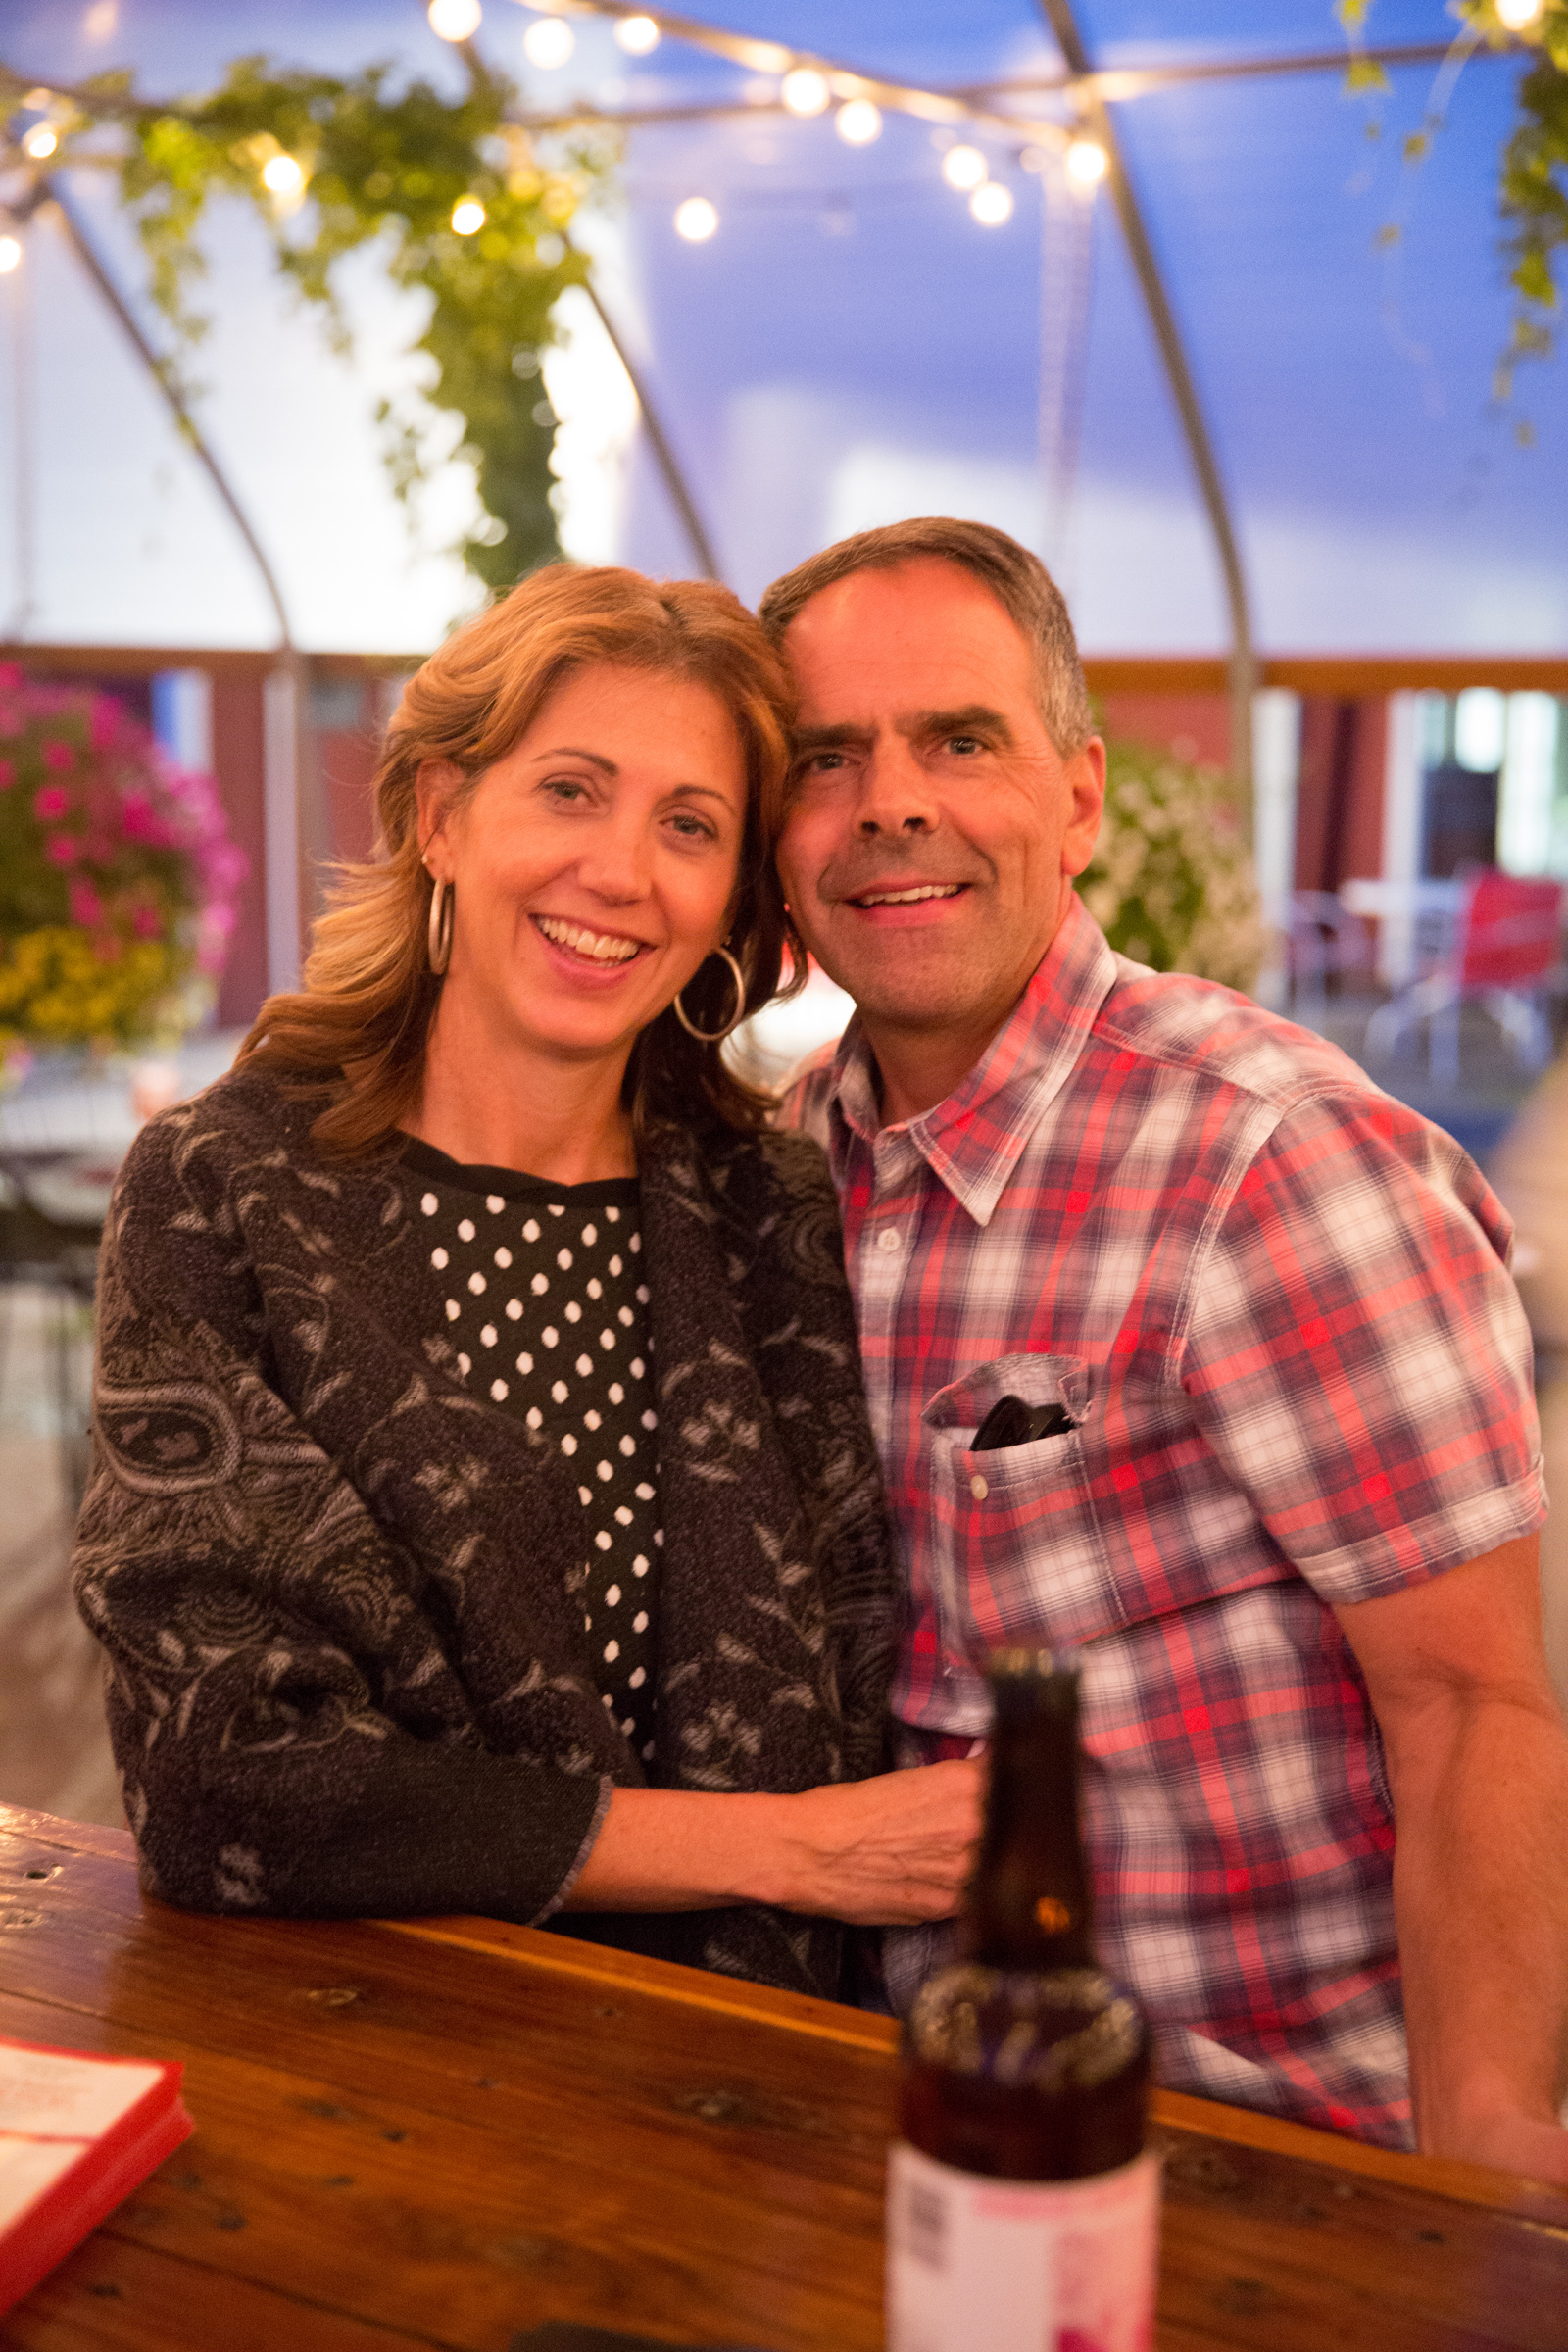 Jeff and Ronda Bosma, owners of Cherry Hill orchard and market